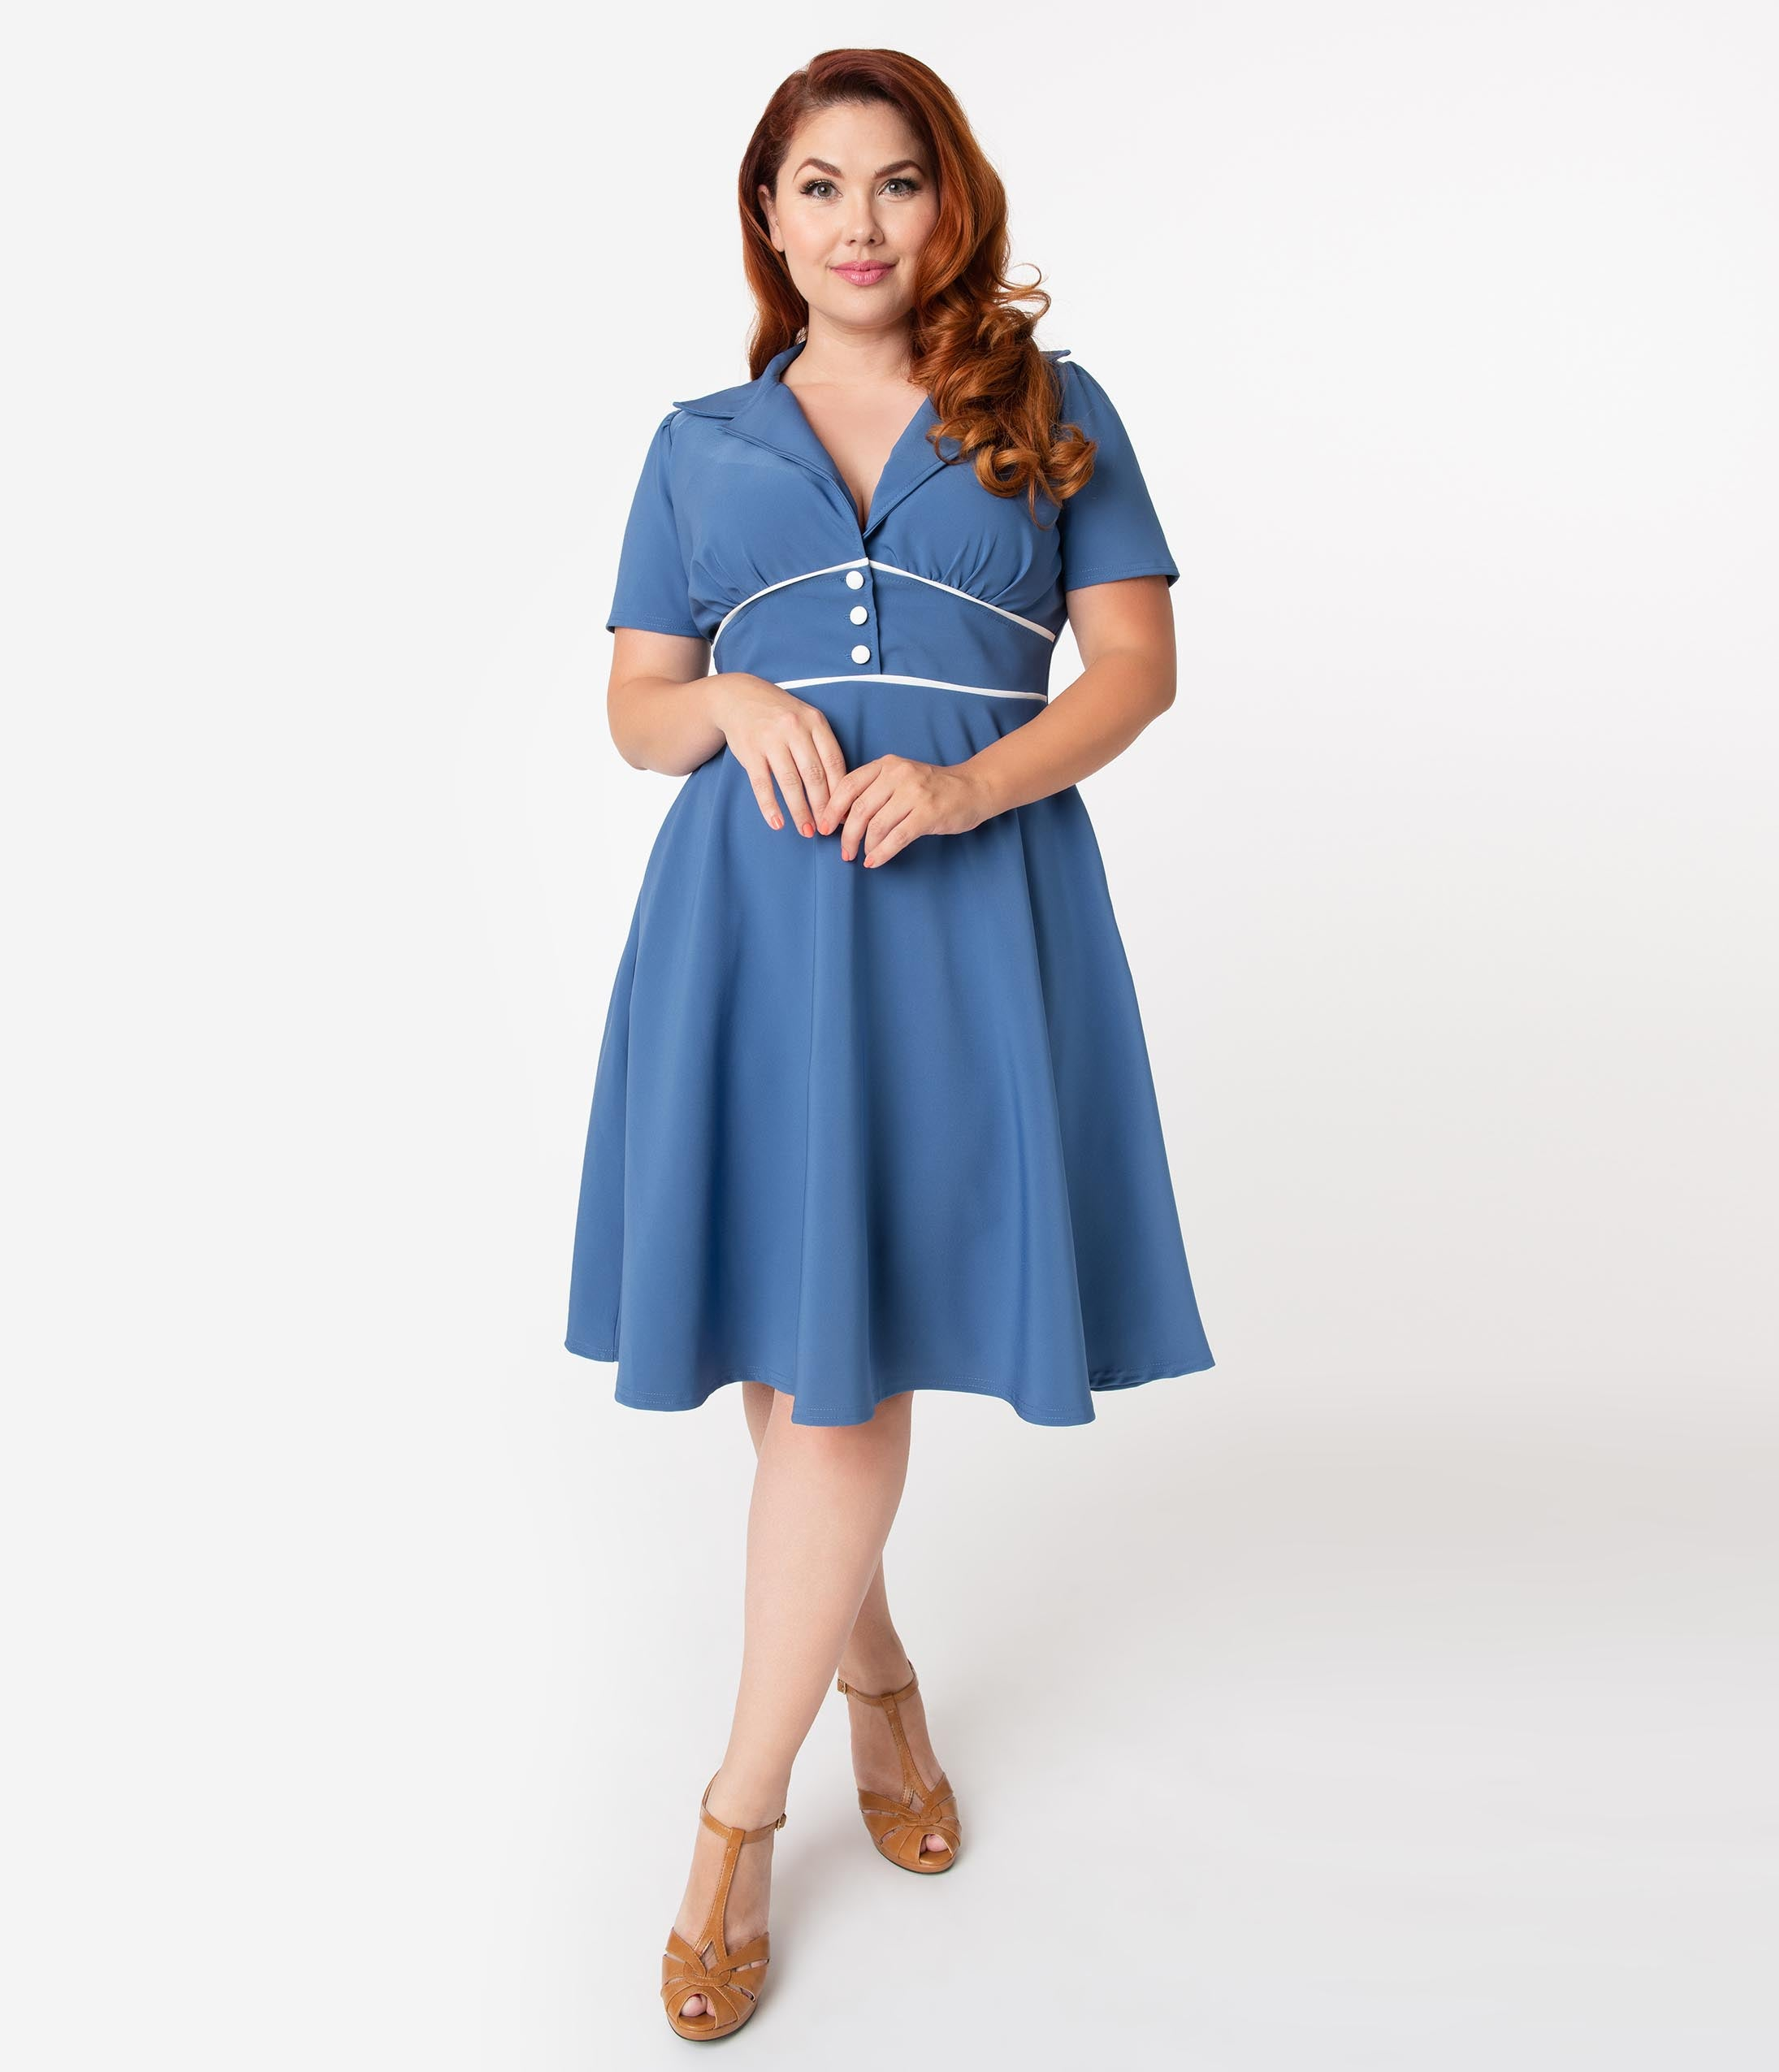 1940s Clothing Steady Plus Size 1940S Style Blue Shadow Katherine Swing Dress $74.00 AT vintagedancer.com